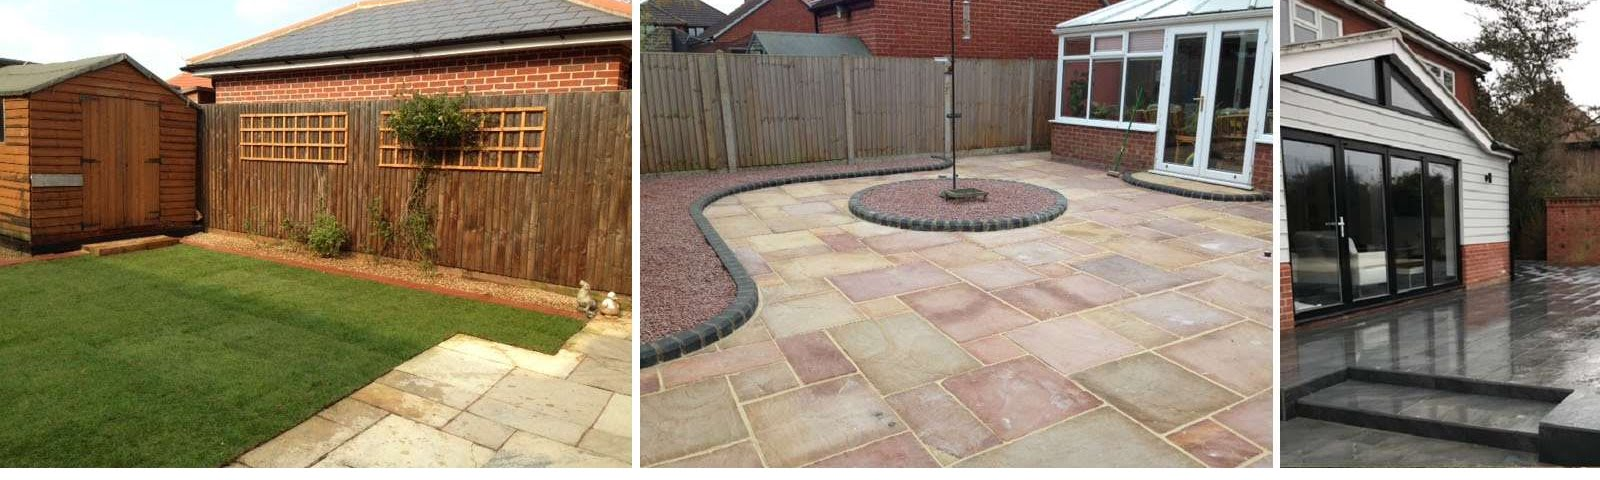 Gardening & Landscaping in Colchester